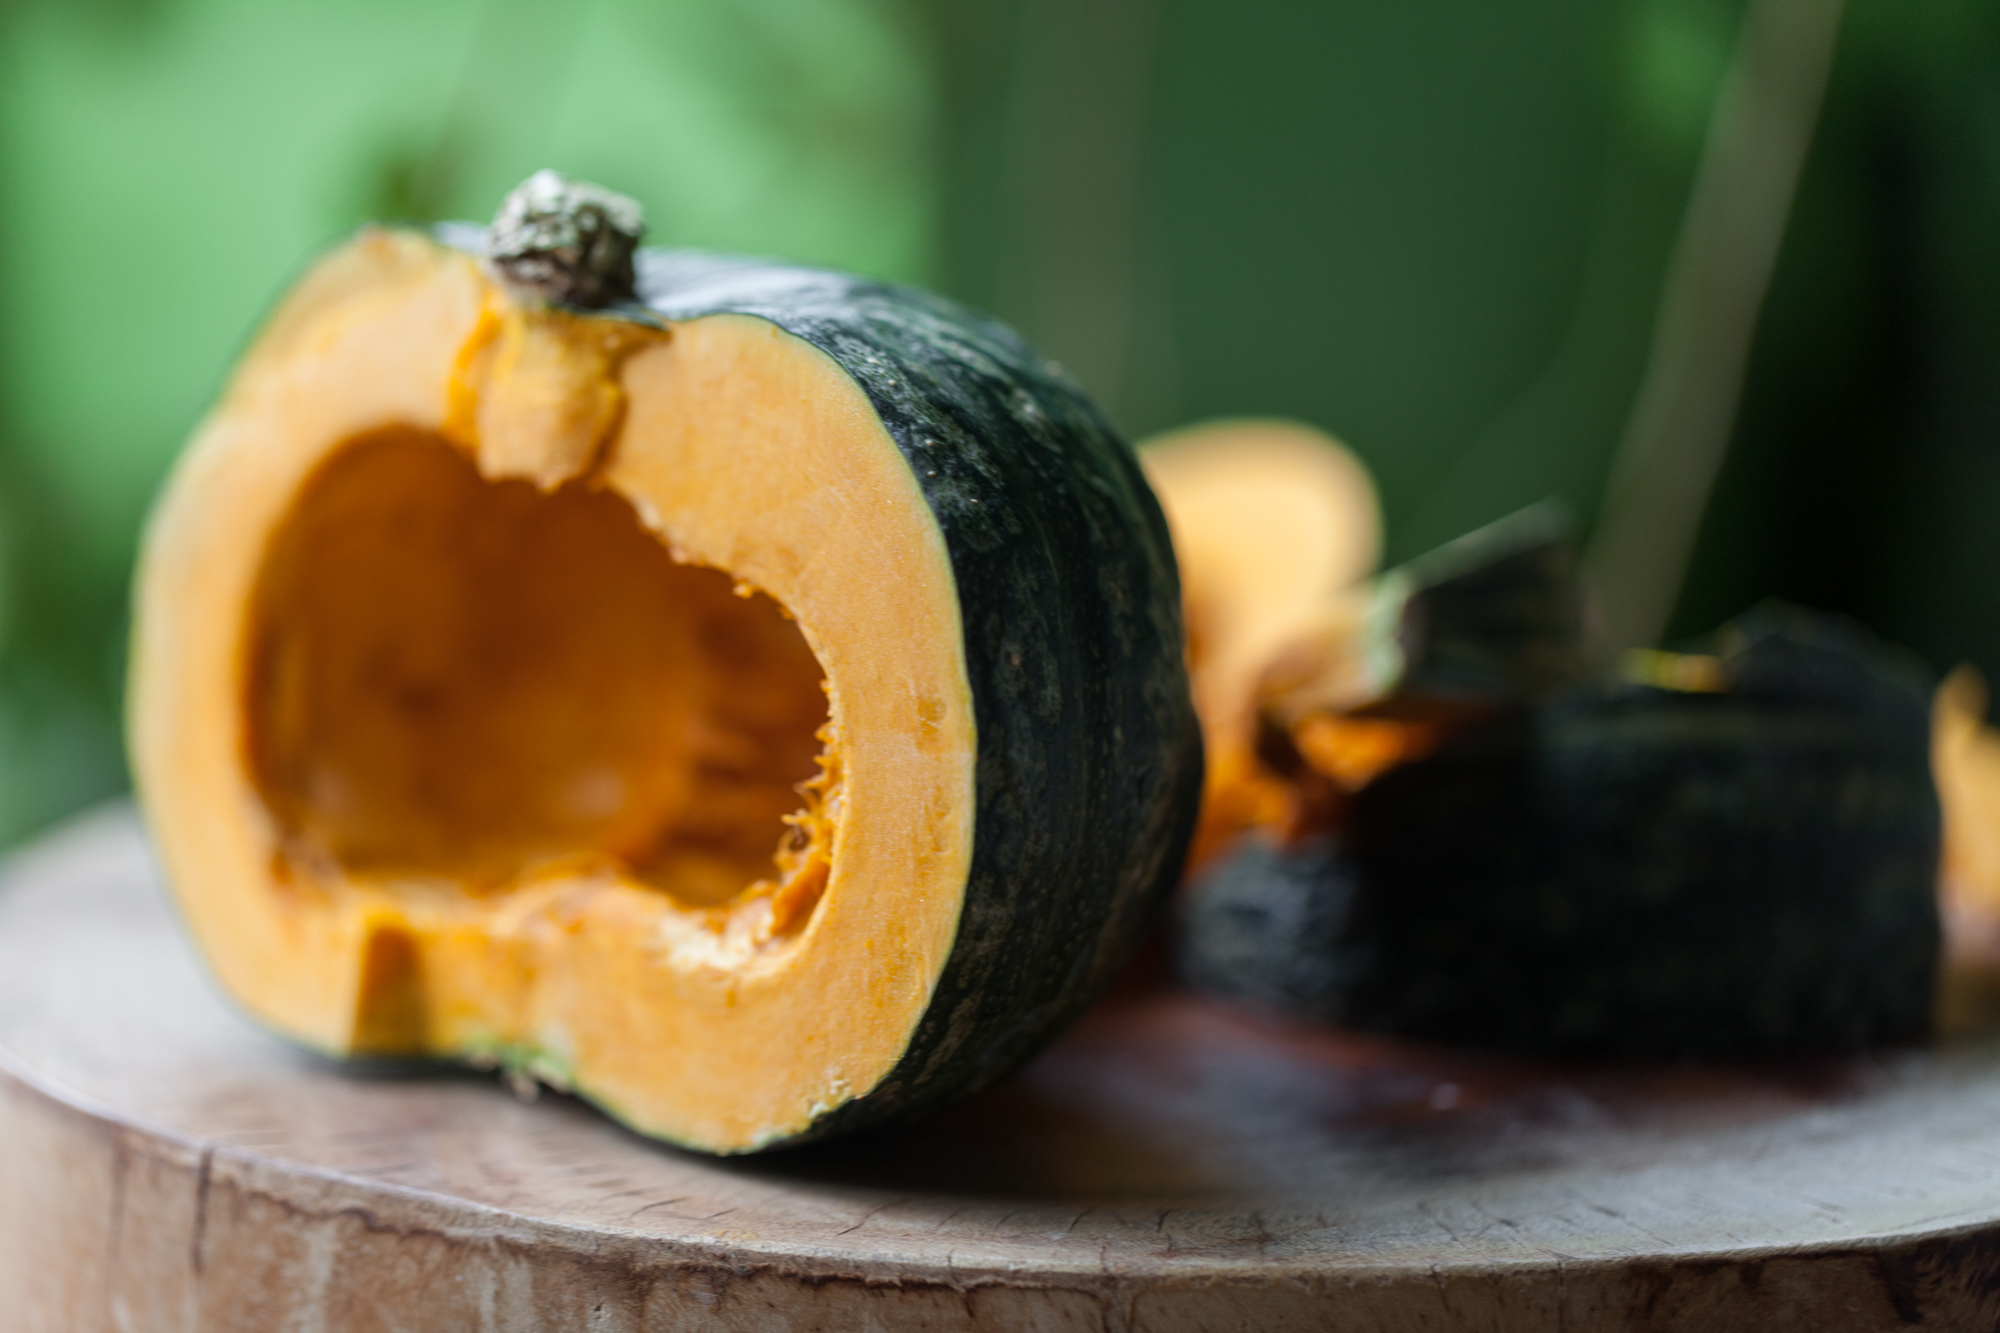 Kabocha squash or Japanese pumpkin ( Cucurbita maxima ) is a winter squash variety that has started to become quite popular in farmers markets and some supermarket chains. Though the skin, which is thick and knobby, doesn't look remotely edible, it actually is and provides a significant amount of fiber. The inside flesh is sweet—a sort of cross between a pumpkin and sweet potato. You can let a kabocha get quite large, which makes it look intimidating, but once you get a knife through it, it's easy to prepare!